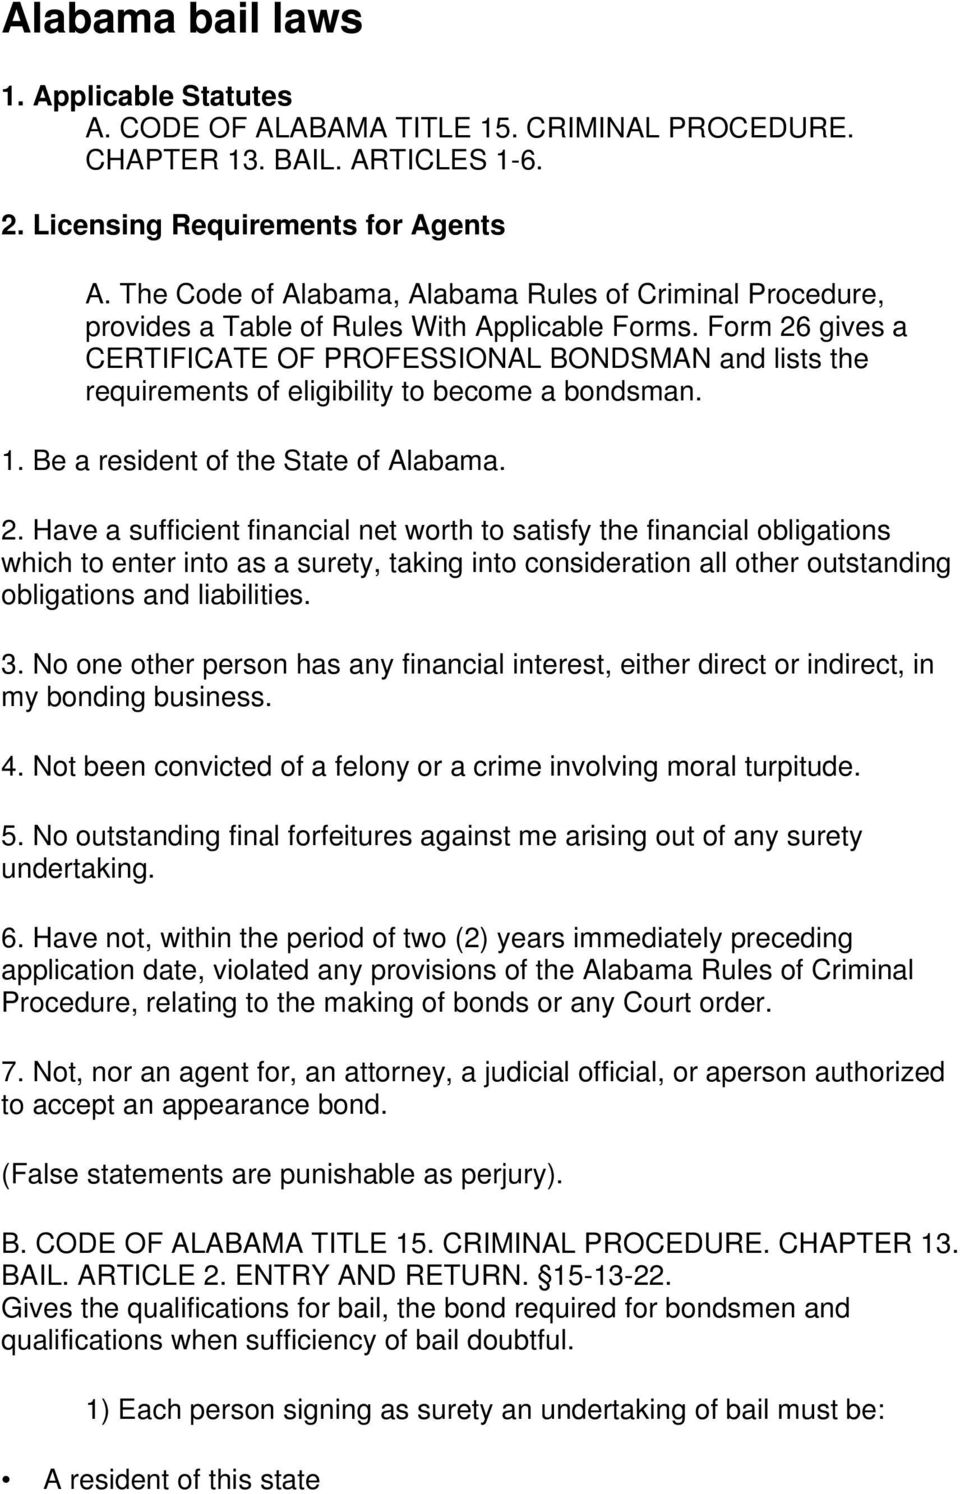 Form 26 gives a CERTIFICATE OF PROFESSIONAL BONDSMAN and lists the requirements of eligibility to become a bondsman. 1. Be a resident of the State of Alabama. 2. Have a sufficient financial net worth to satisfy the financial obligations which to enter into as a surety, taking into consideration all other outstanding obligations and liabilities.